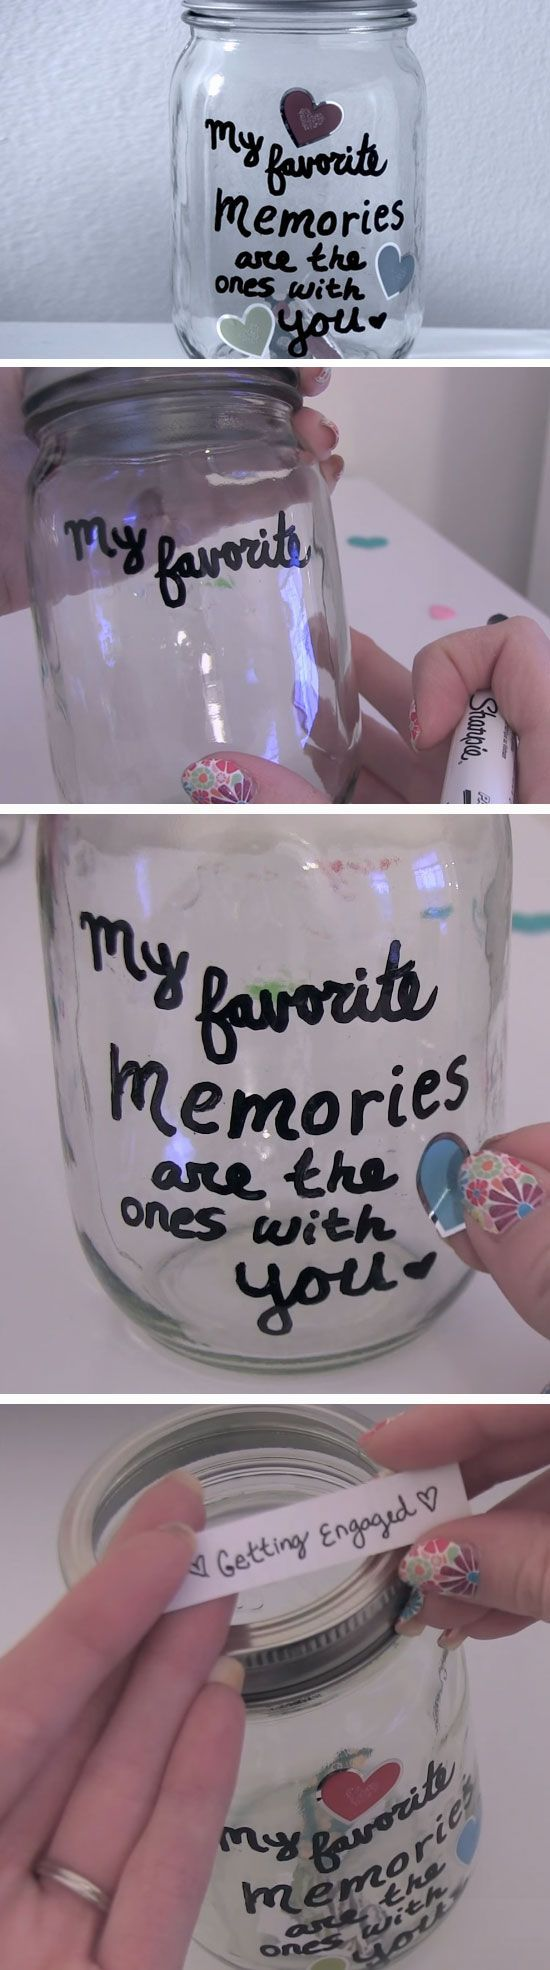 Favorite Memories | DIY Valentines Mason Jar Crafts for Him | Easy Gifts in a Jar Ideas for Boyfriend - Tap The Link Now Find that Perfect Gift